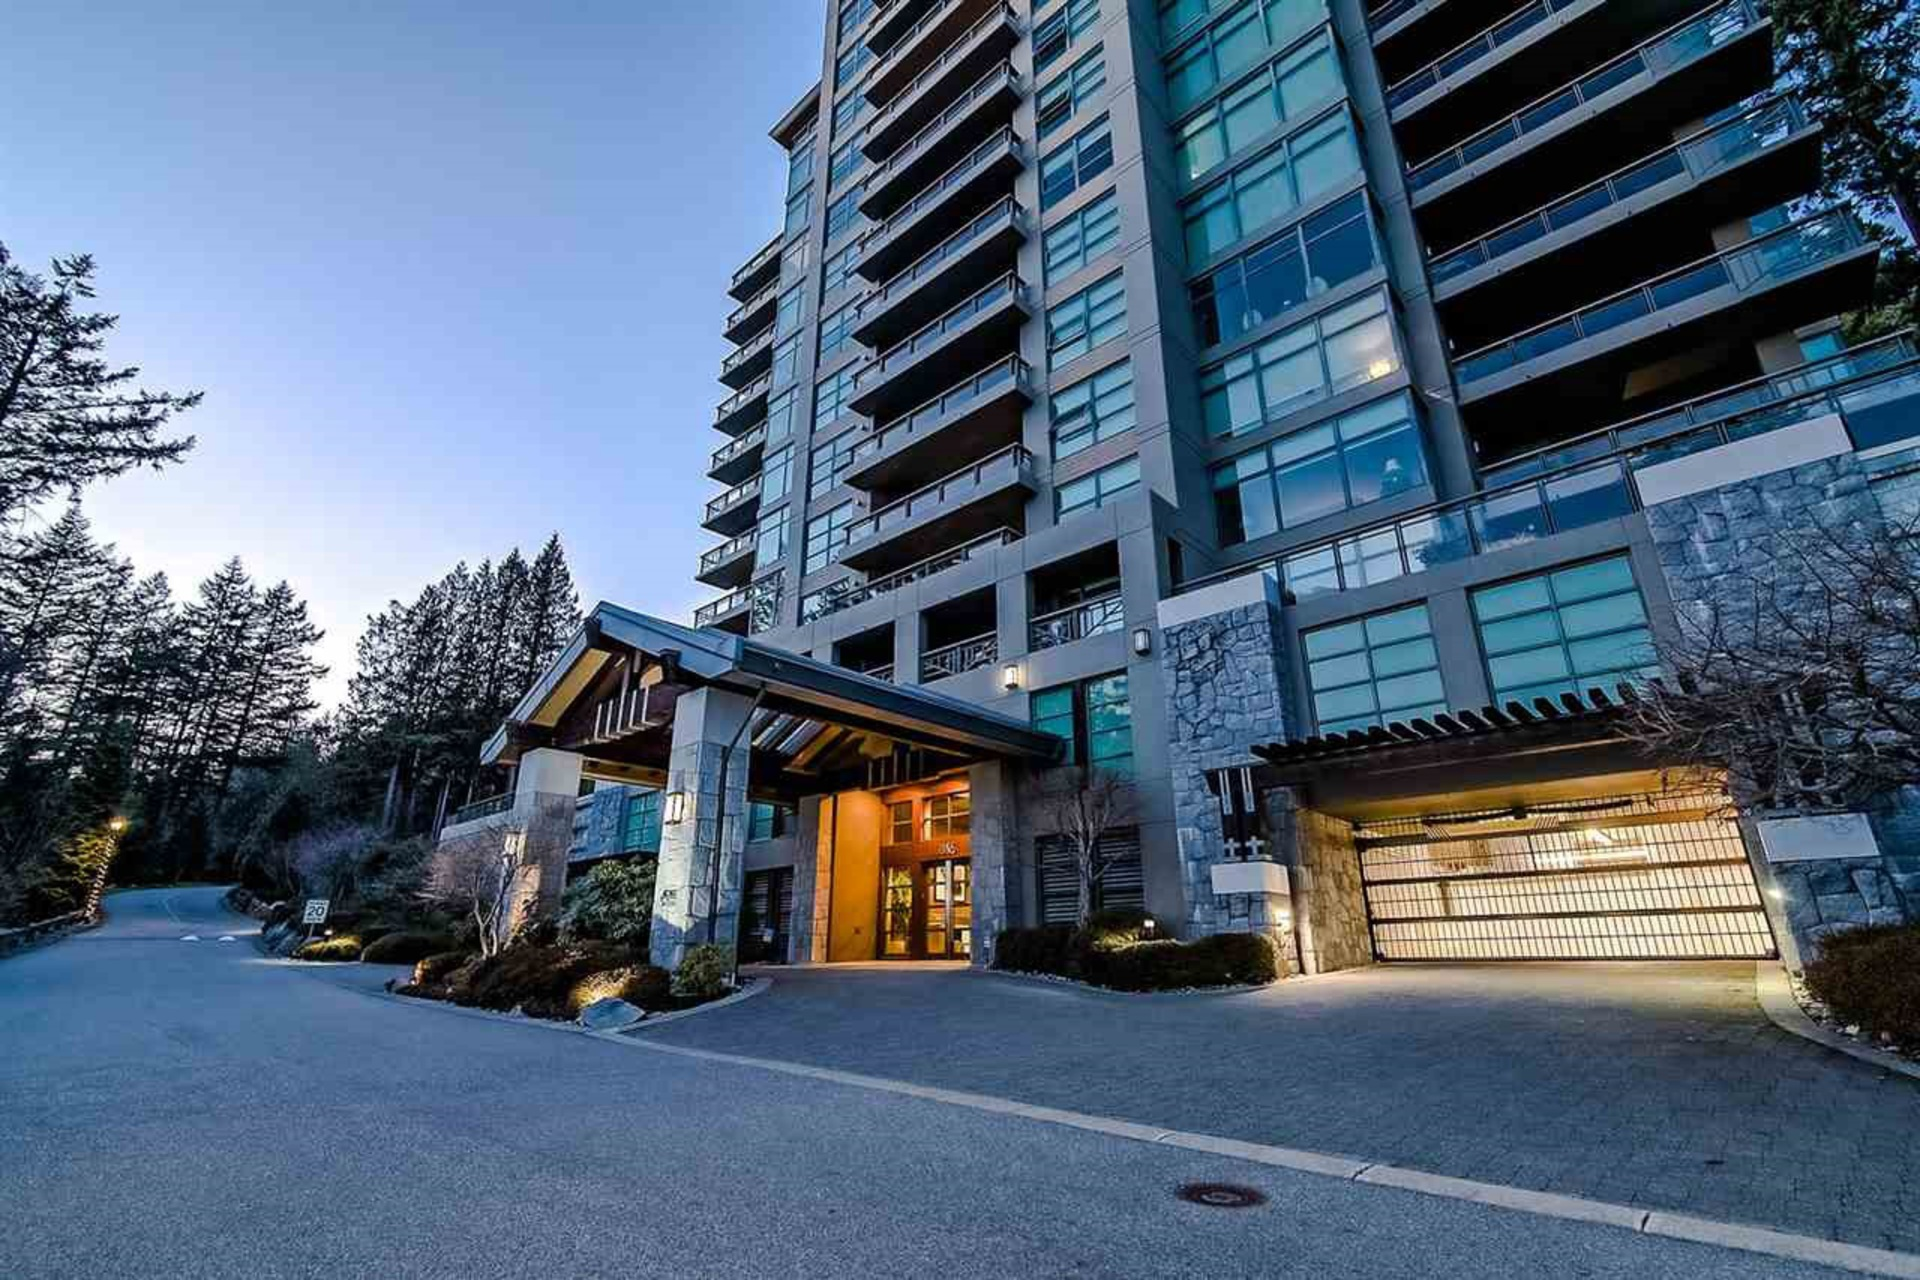 262529205 at 1103 - 3355 Cypress, Cypress, West Vancouver